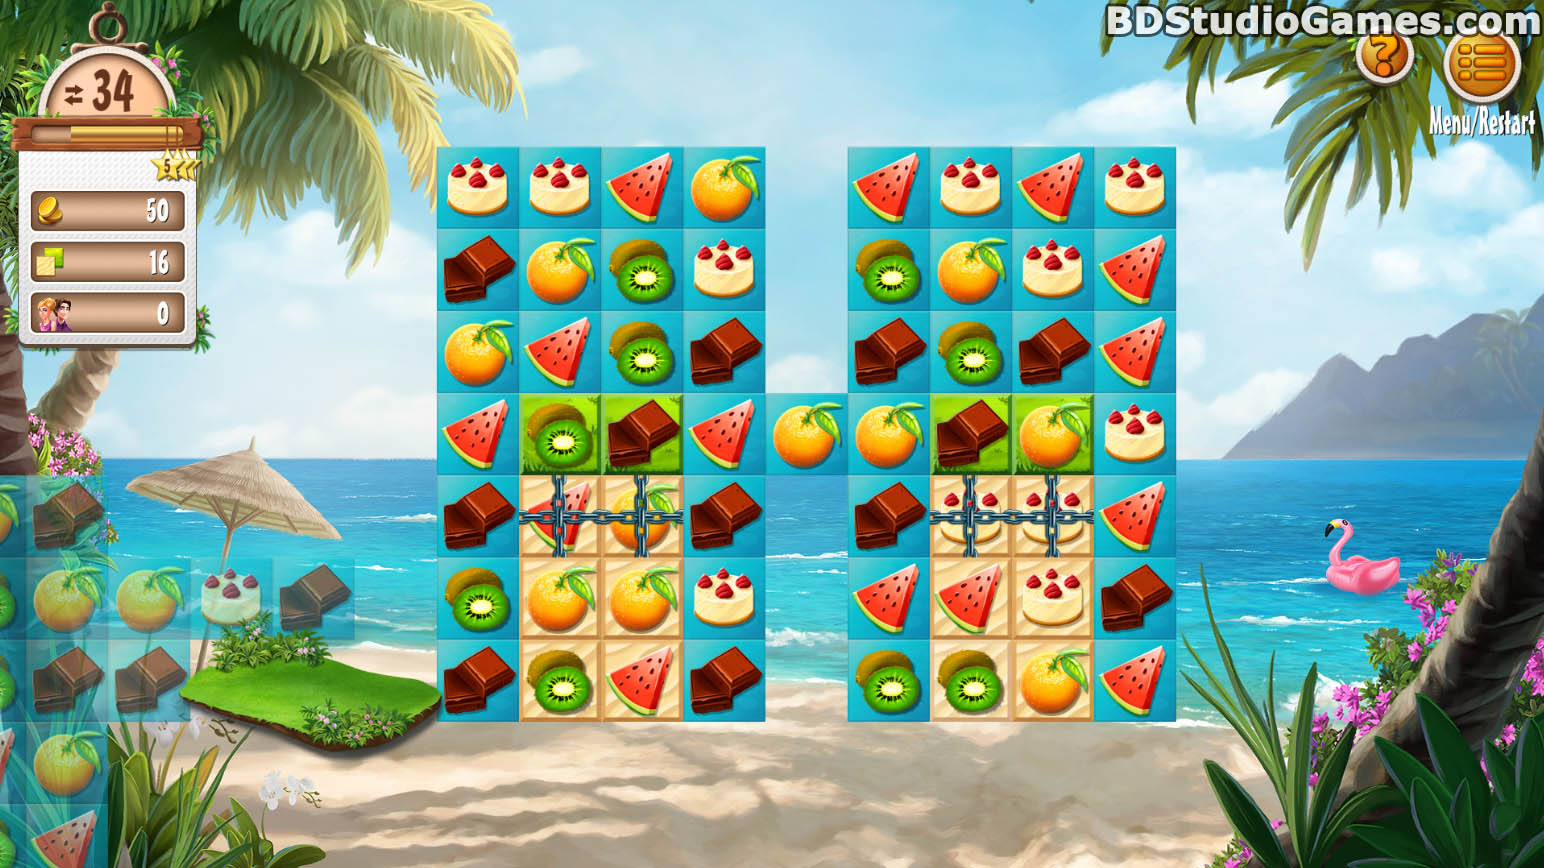 5 Star Miami Resort Trial Version Free Download Full Version Buy Now Screenshots 07